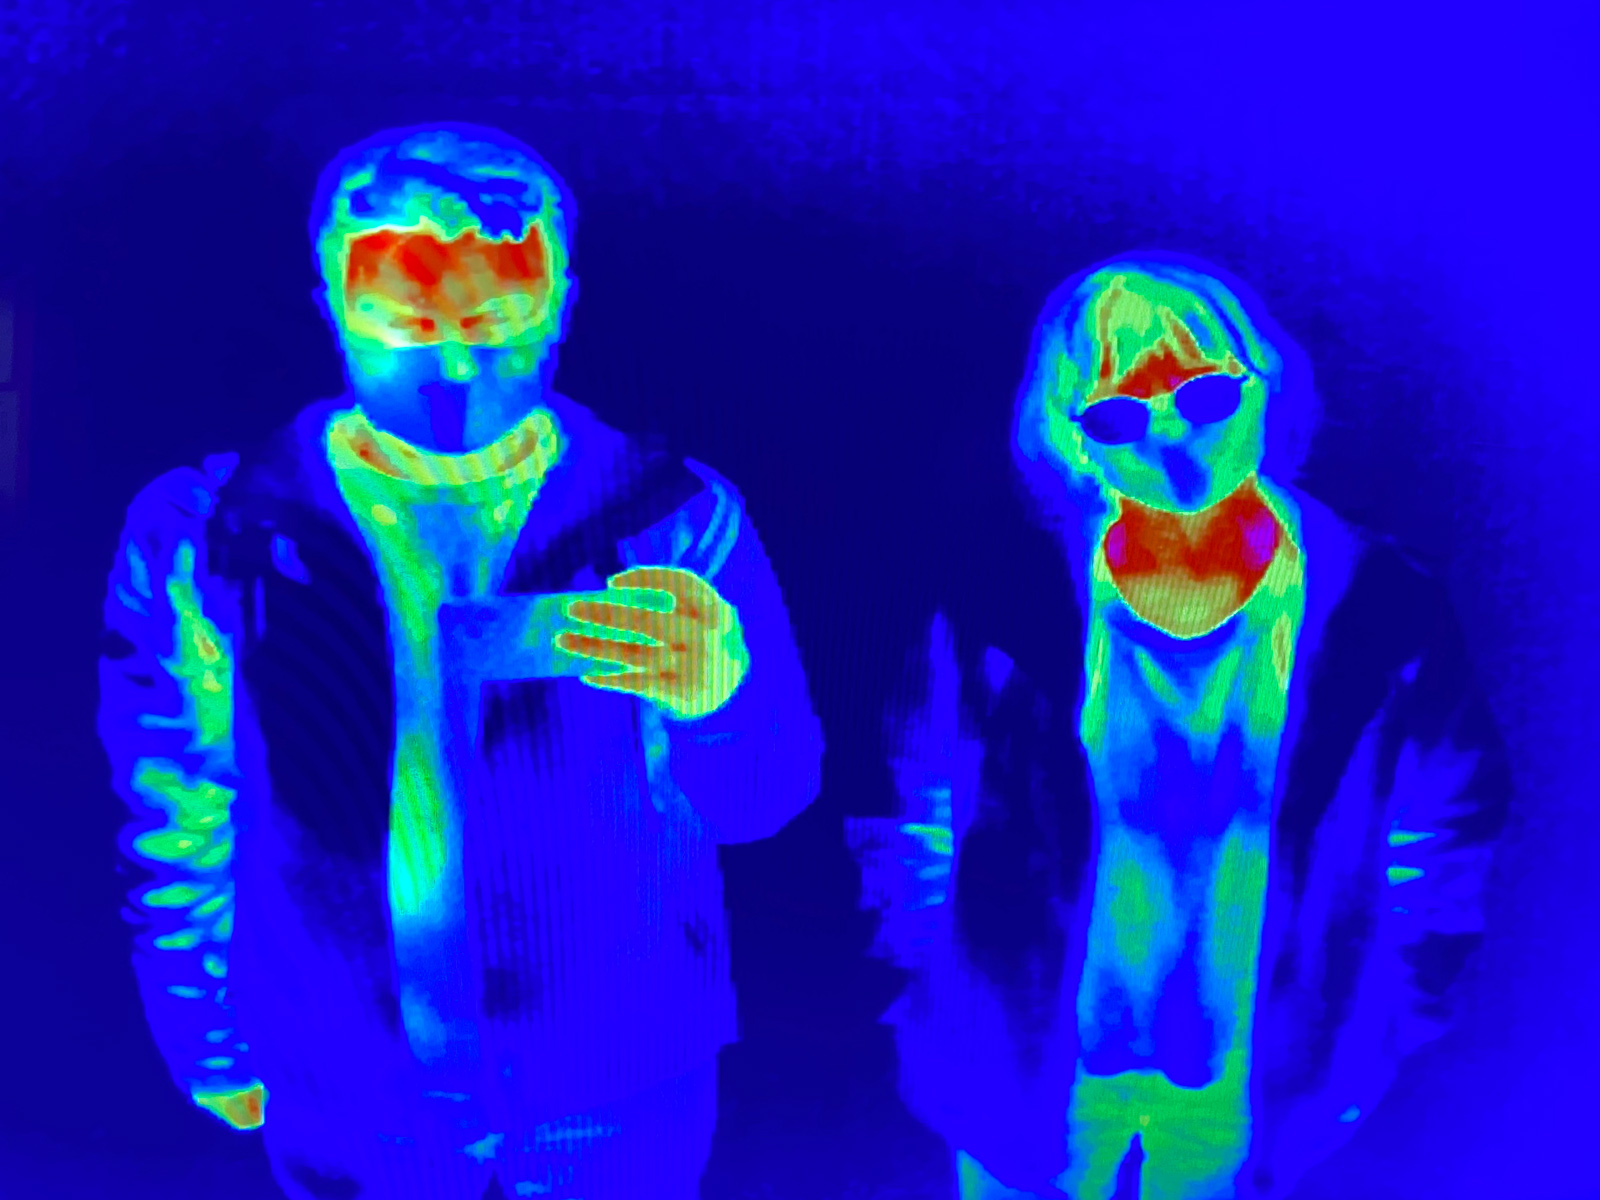 Rowan and Charlotte in blues, greens, and reds. Picture taken by a thermographic camera.